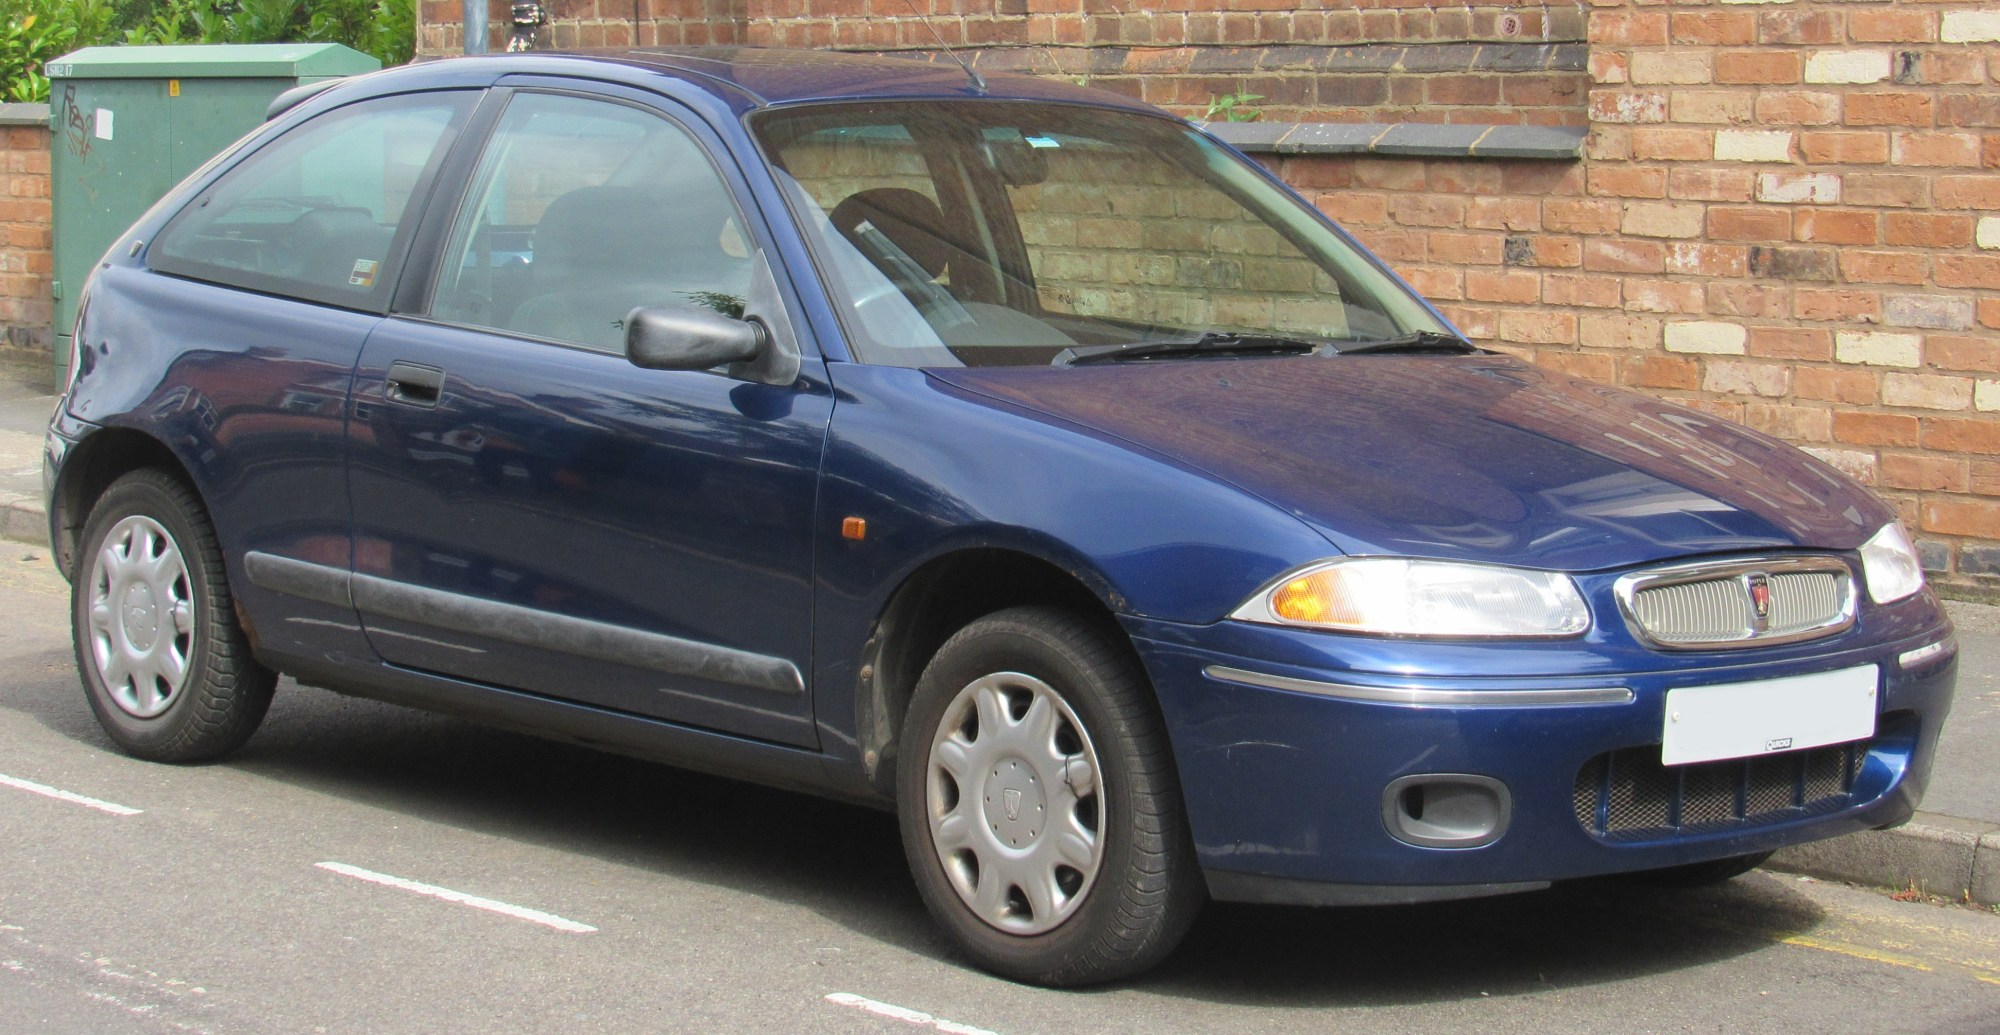 hight resolution of 1998 rover 214 si 1 4 front jpg